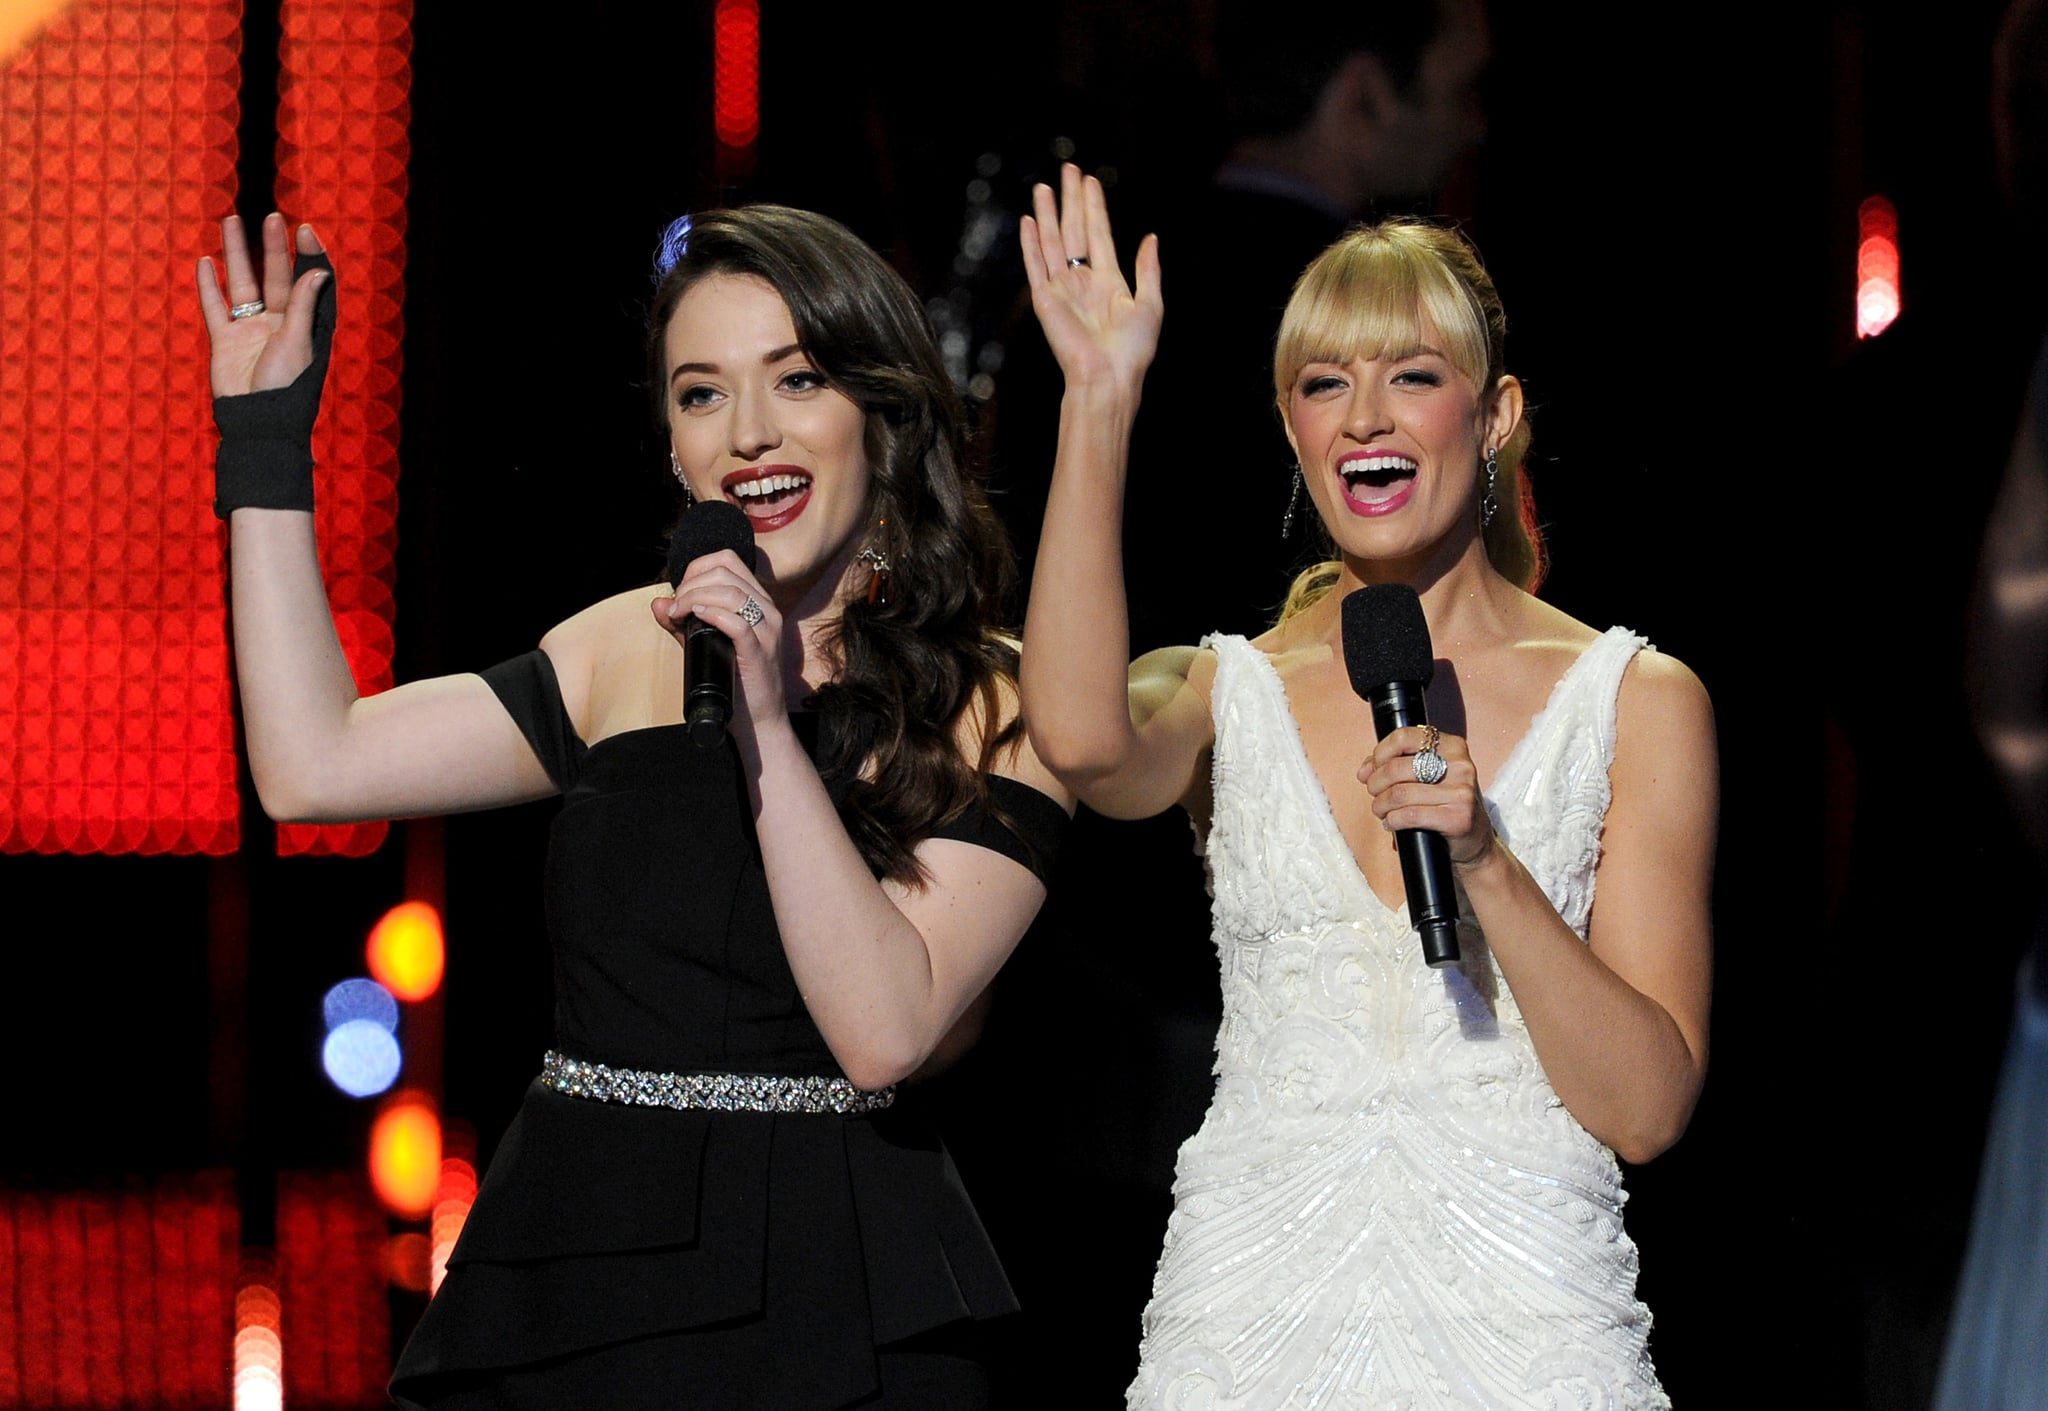 Kat and Beth showed a united front throughout the show.